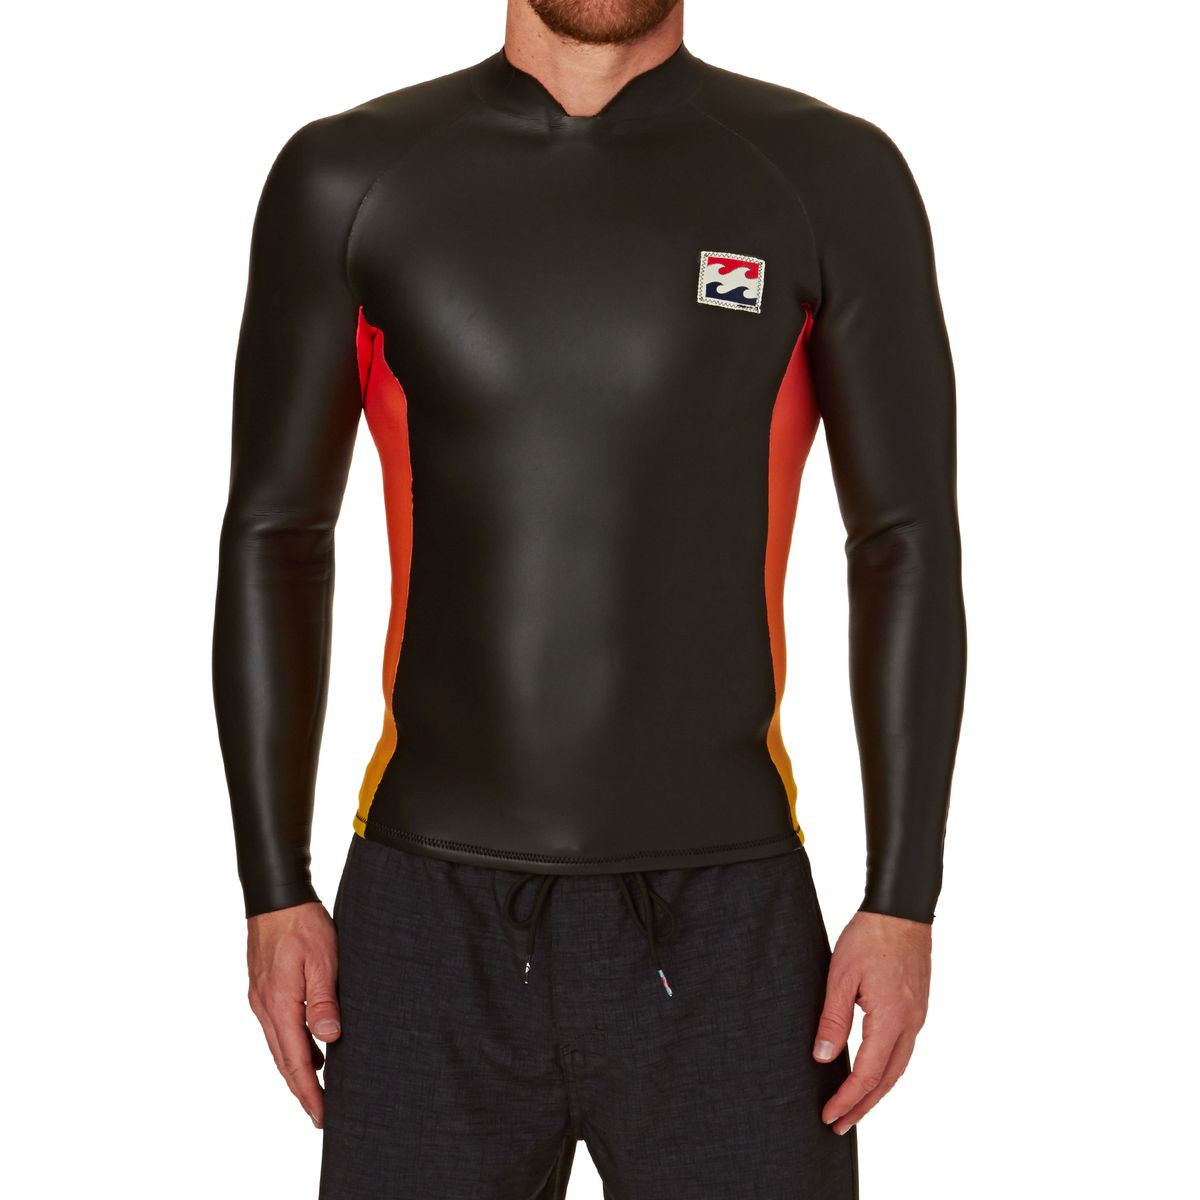 Billabong Revolution Re Issue 2mm 2017 Back Zip Long Sleeve Wetsuit - Faded